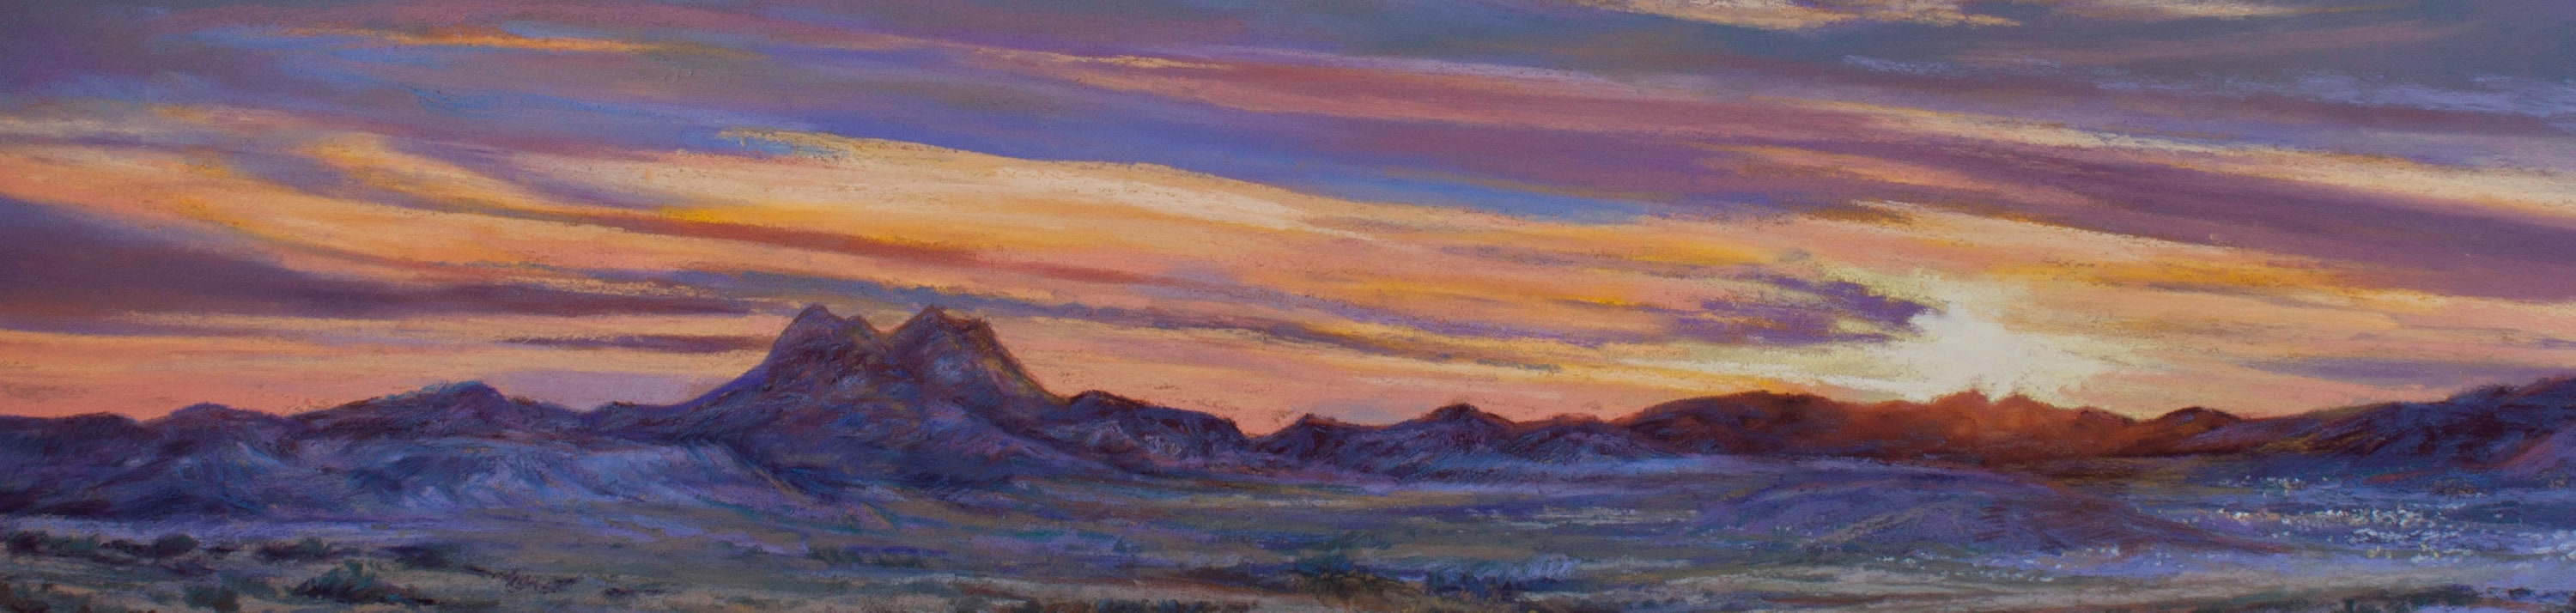 <div class='title'>           23G15 The Lights of Alpine Texas 10x20 pastel Lindy C Severns banner         </div>